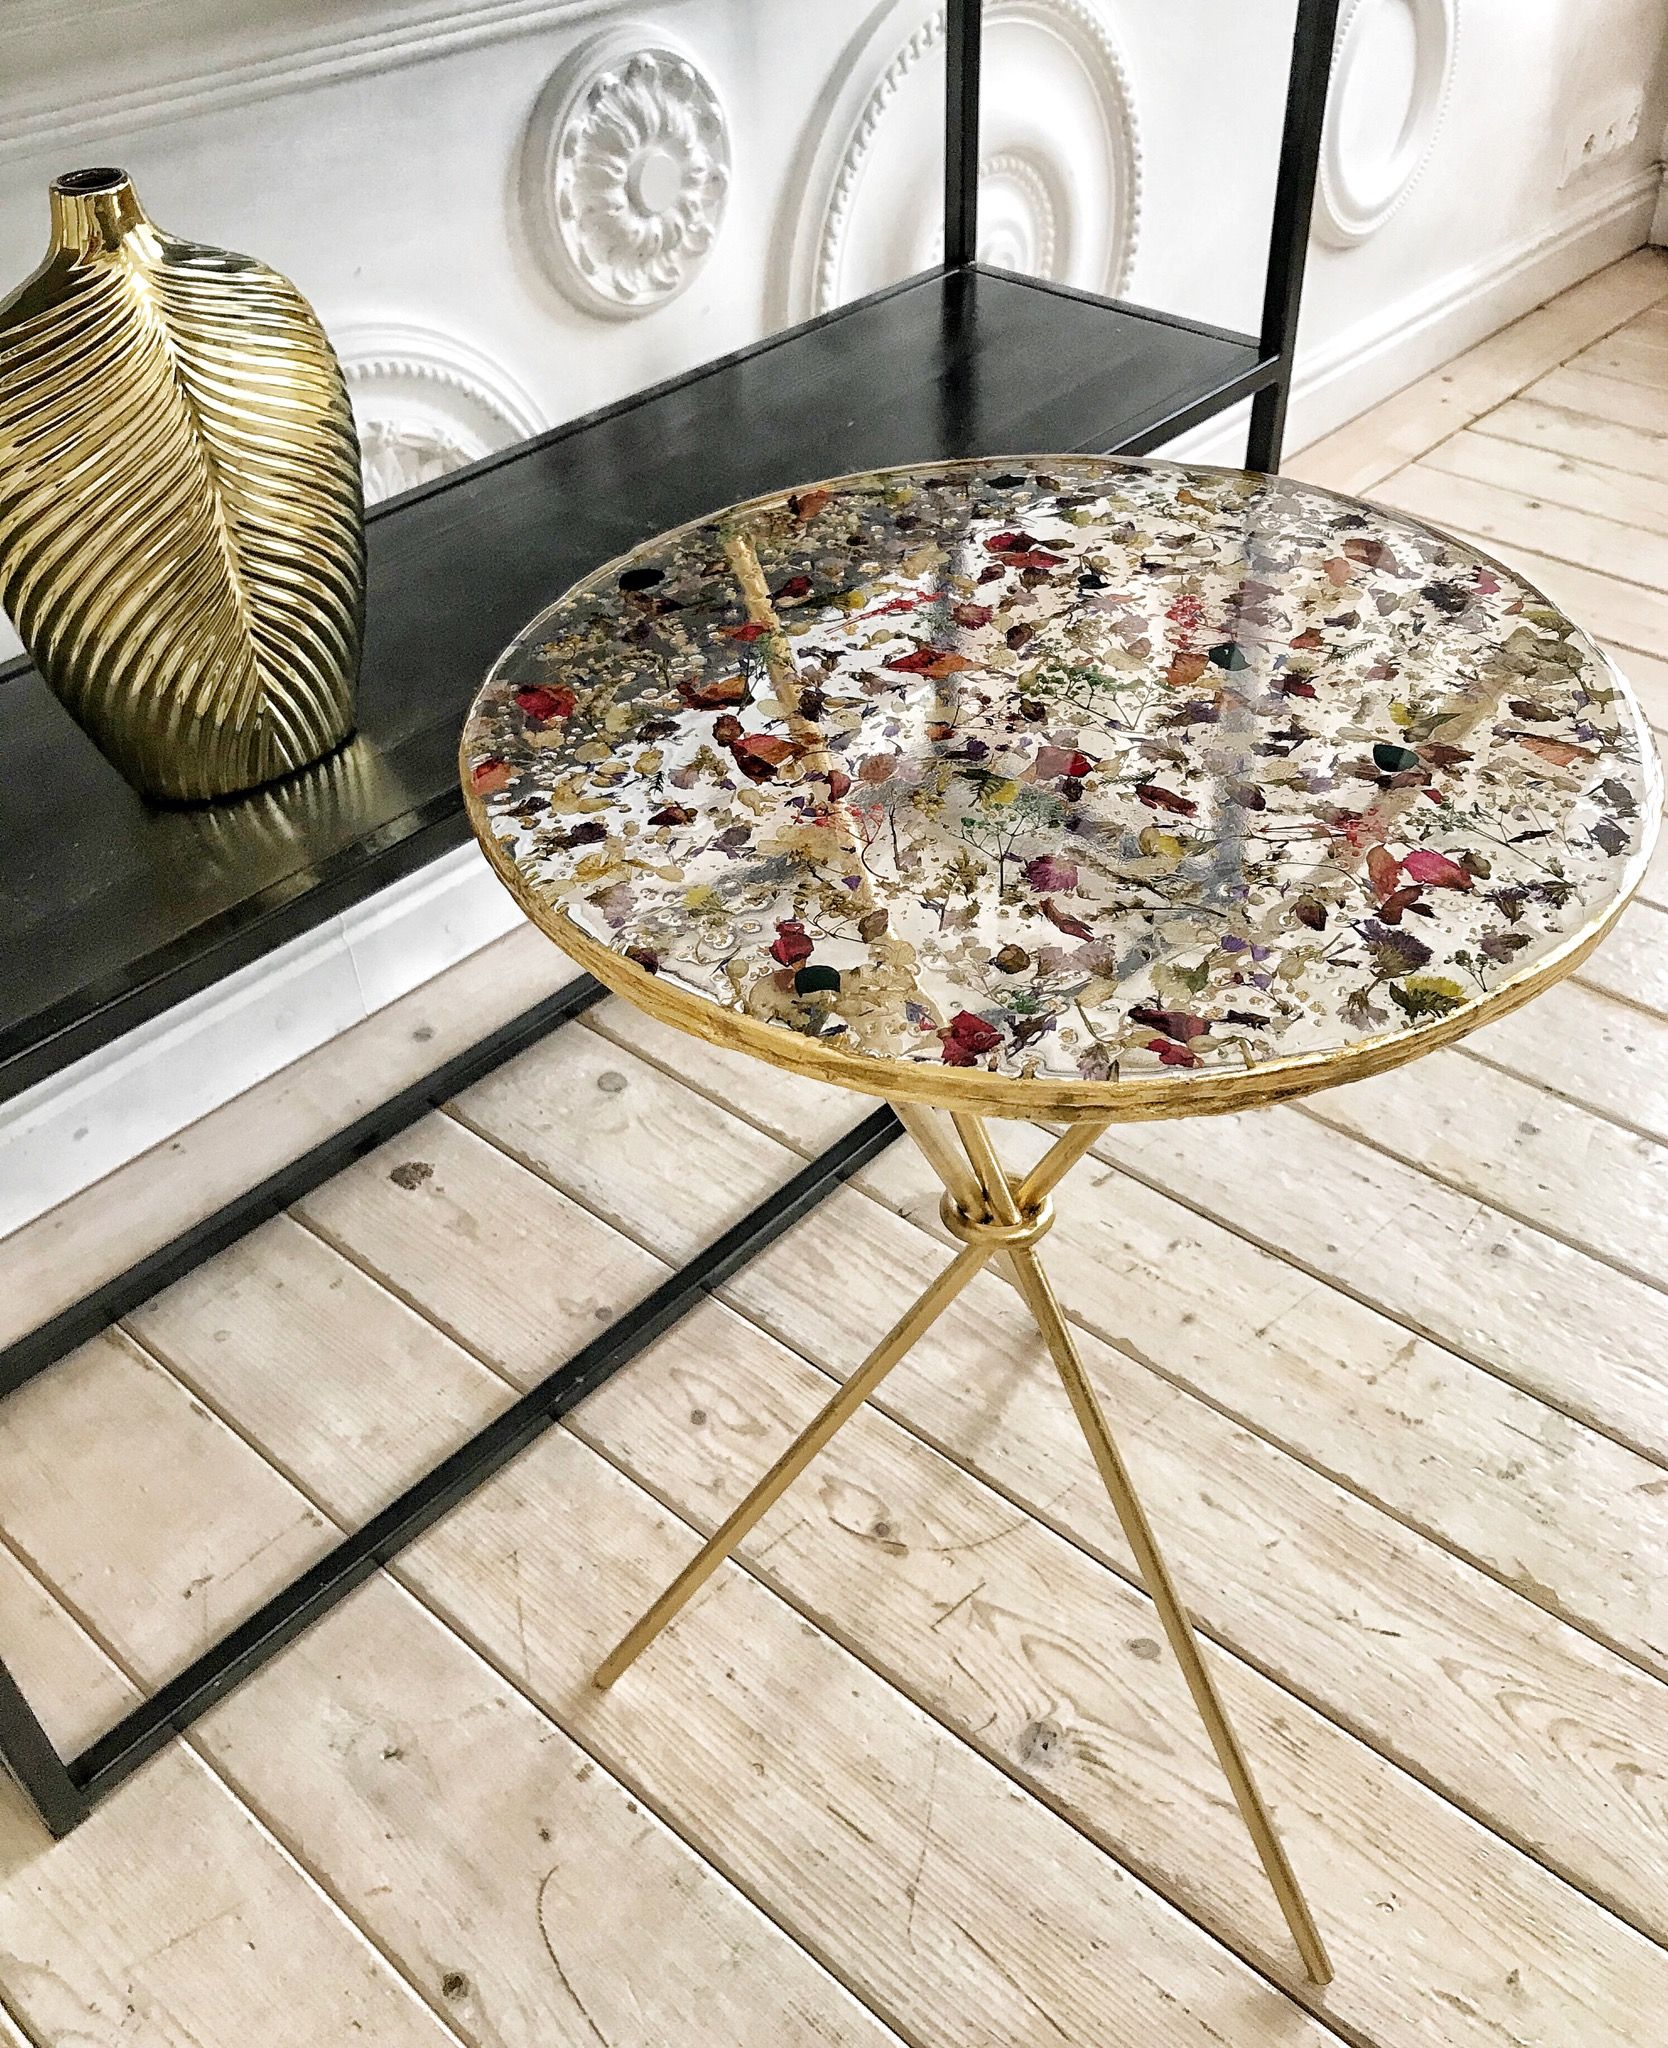 Epoxy Resin Table With Pressed Flowers Clear Round Coffee Table Gold Side Table Top With Dry Flowers Resin Table Epoxy Resin Table Diy Resin Art [ 2048 x 1668 Pixel ]